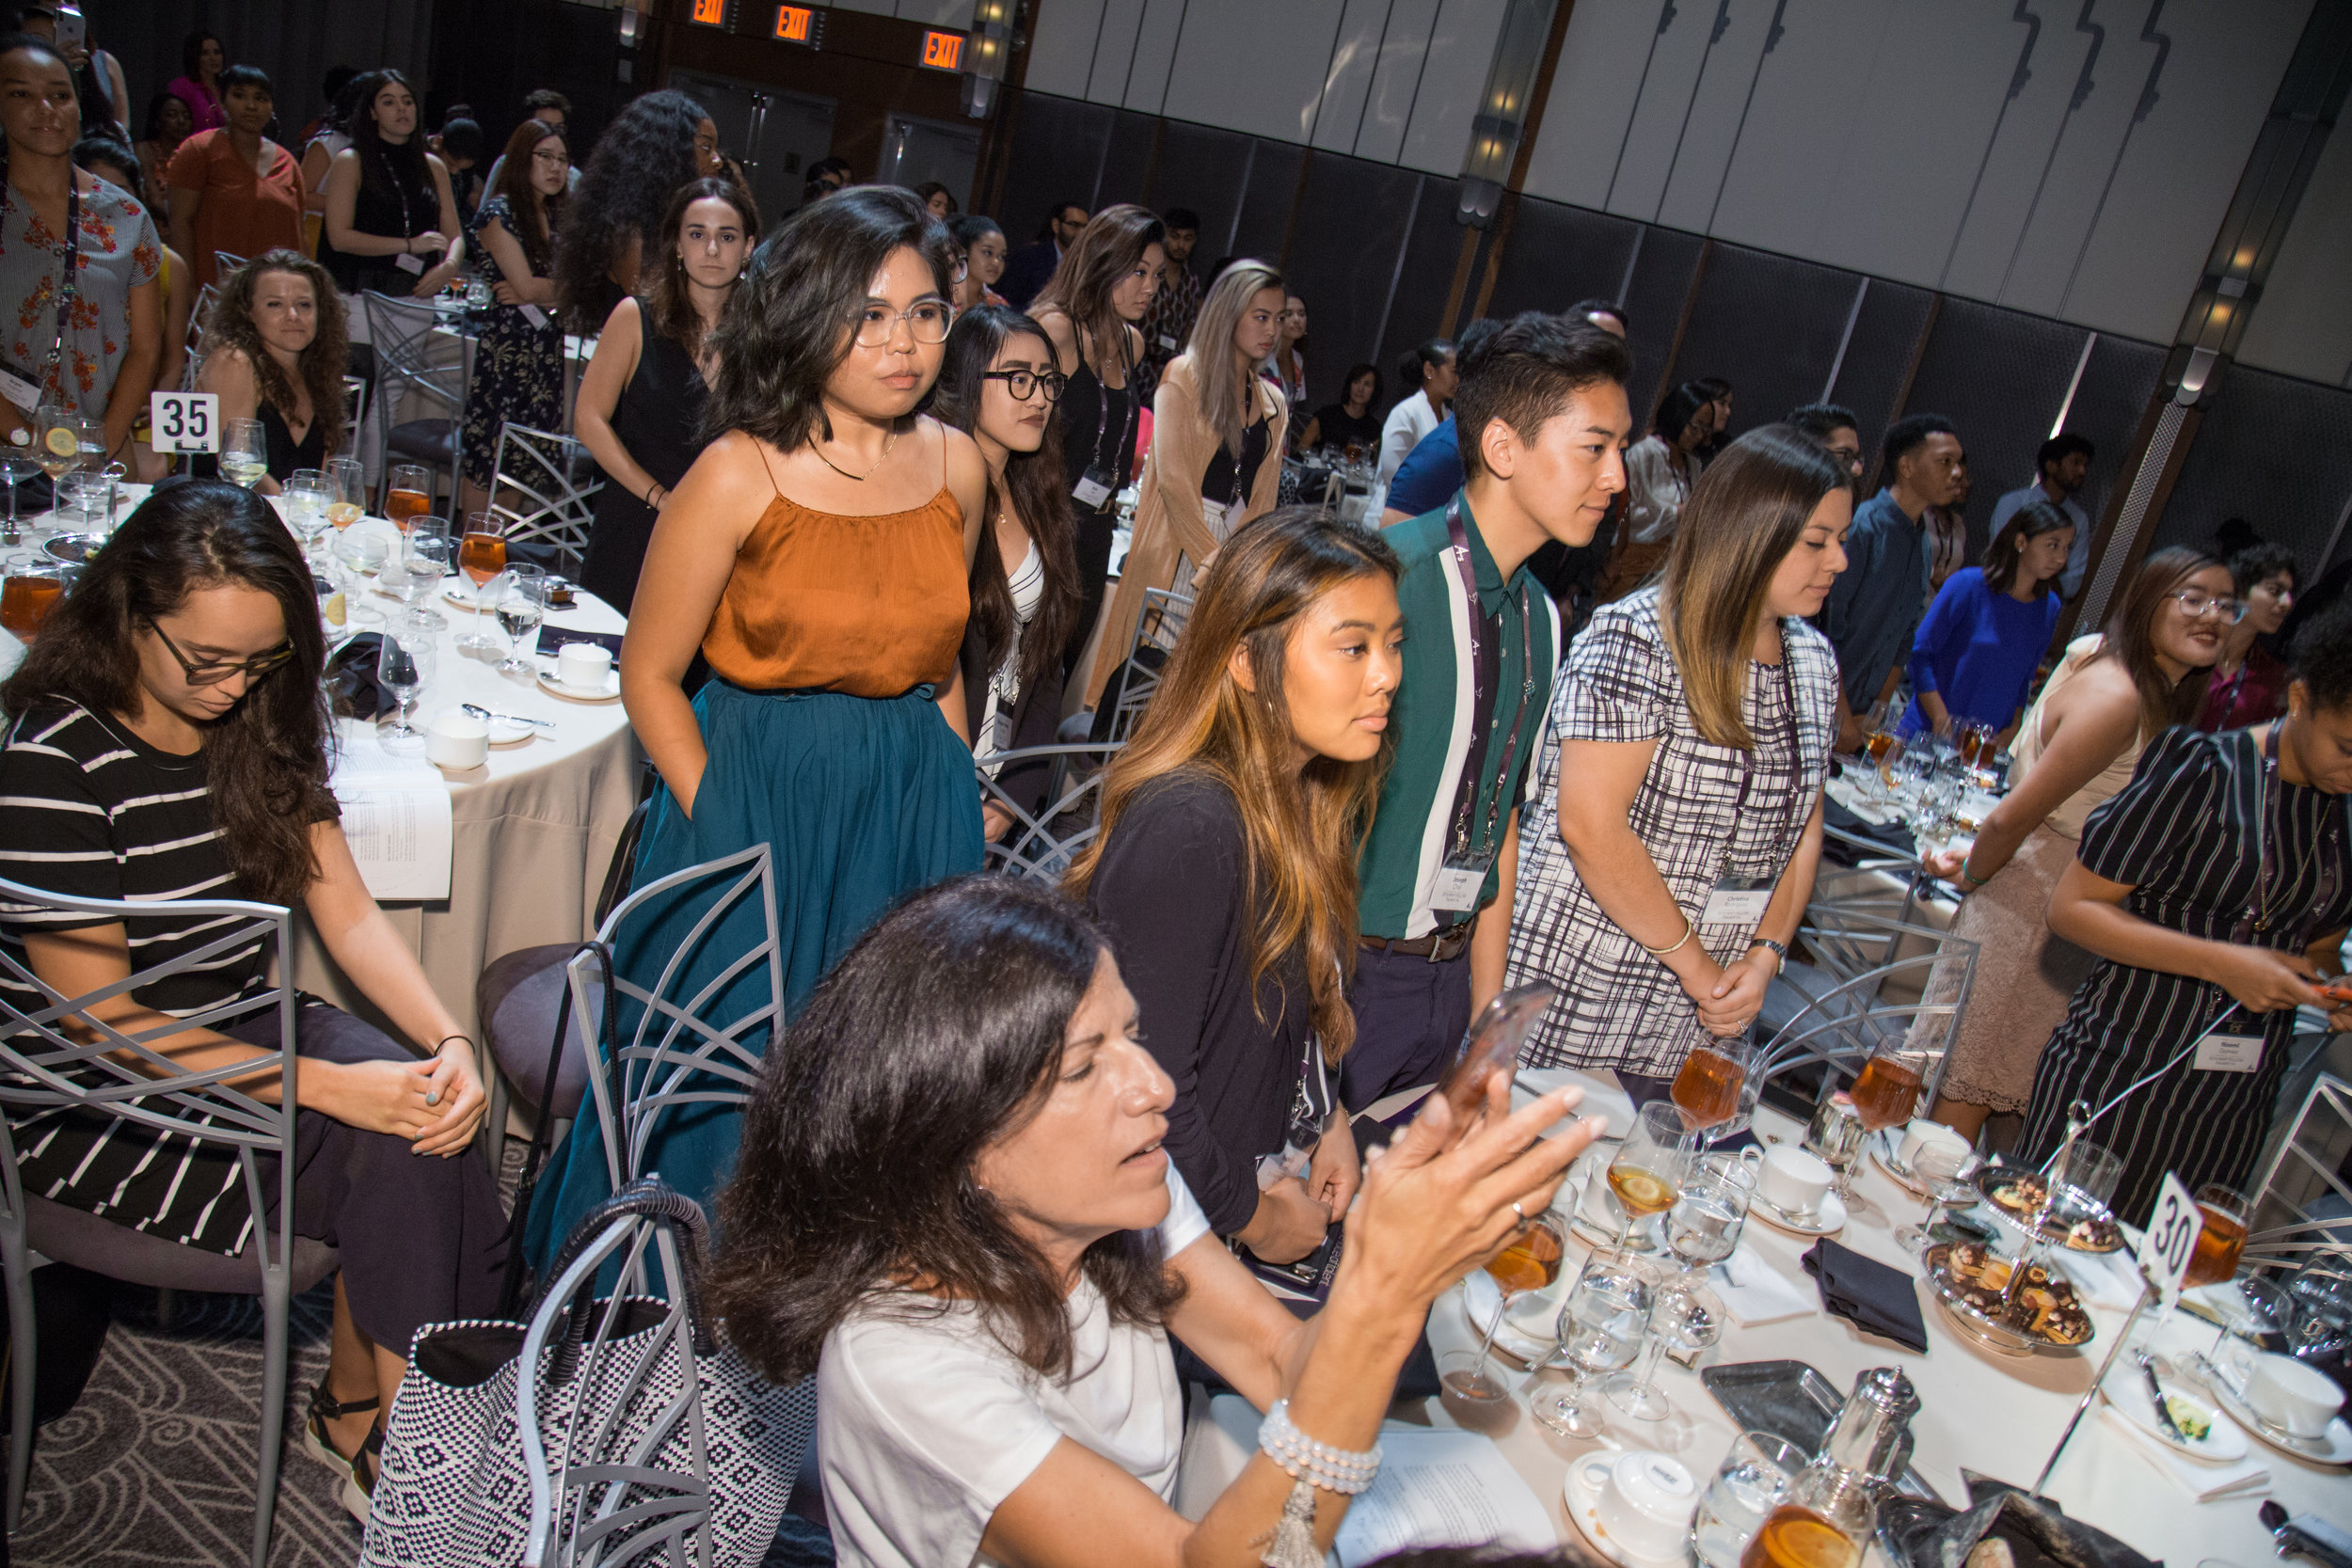 4As_MAIP_FOT_Luncheon_2018_Margarita_Corporan-174.jpg